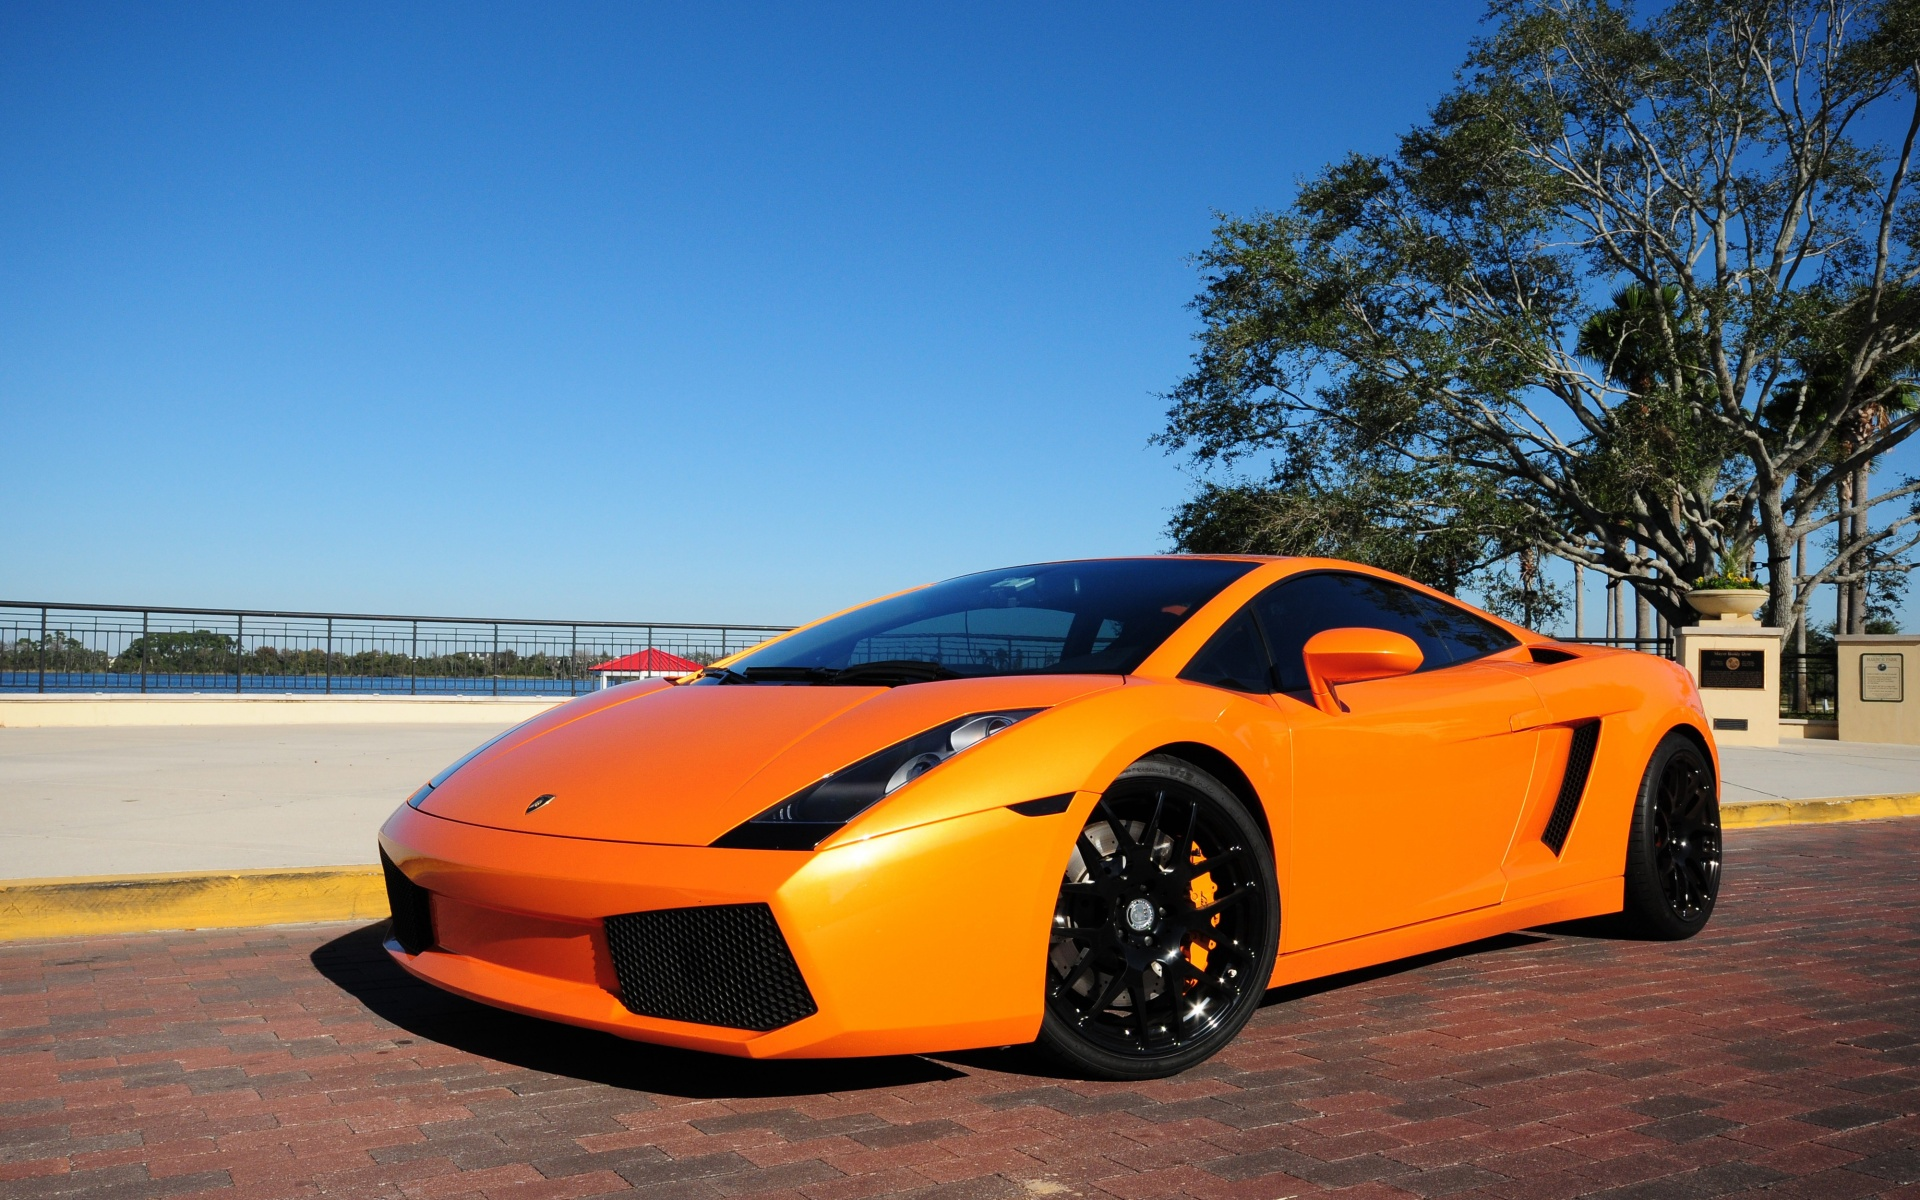 Lamborghini Gallardo Orange Wallpaper HD Car Wallpapers 1920x1200